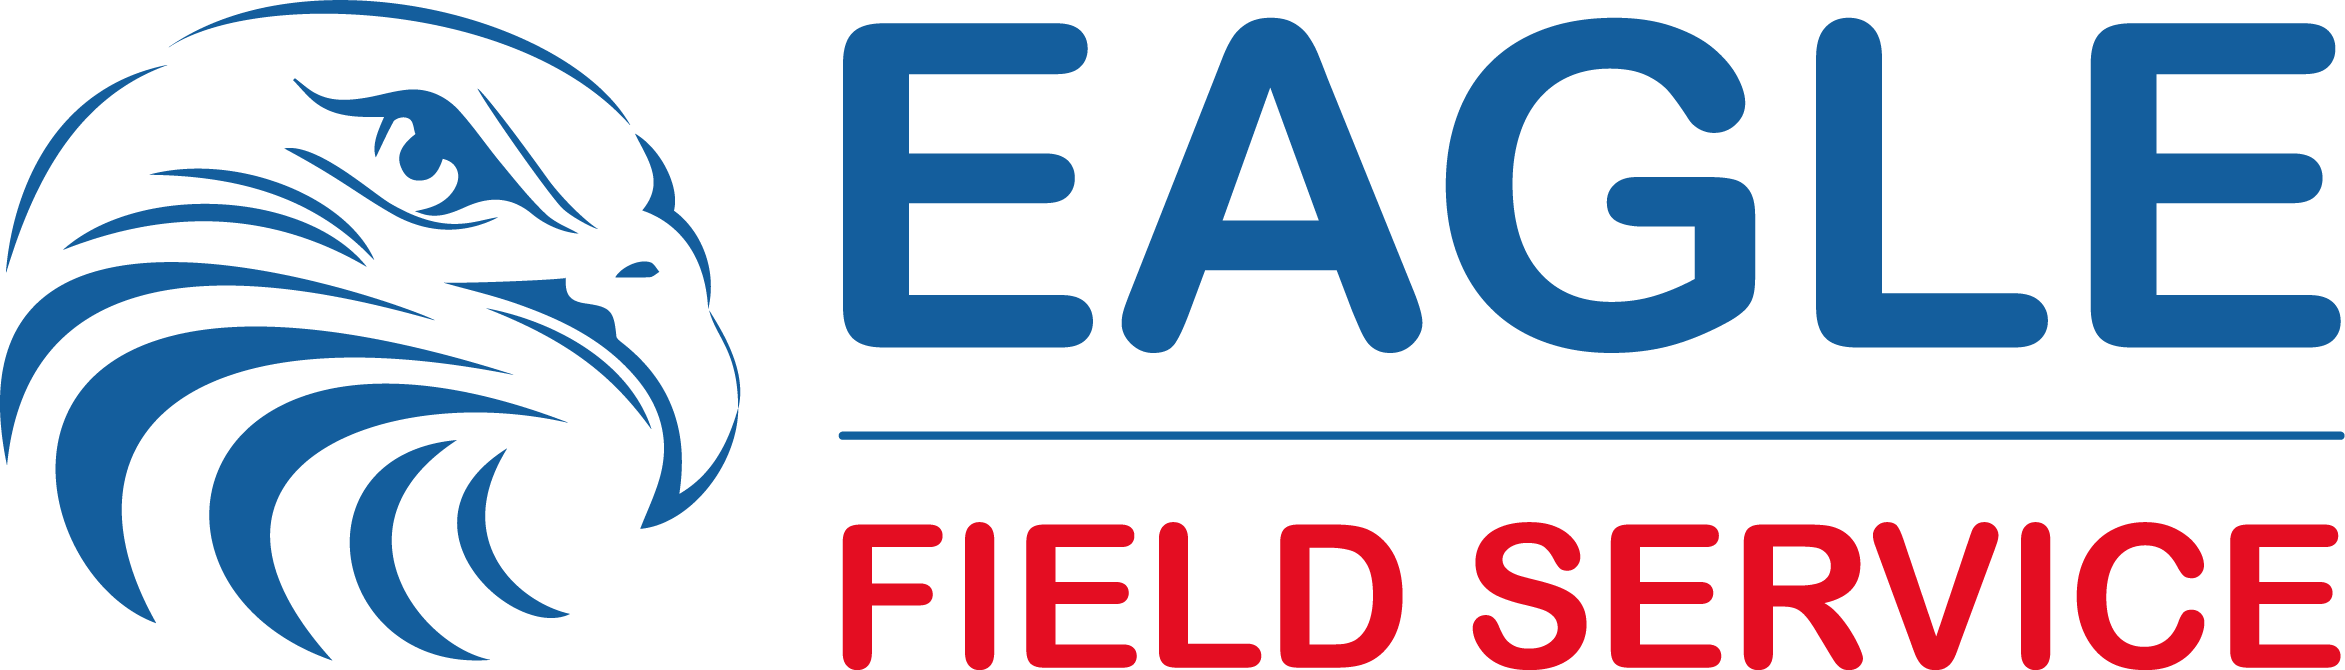 Eagle Field Service logo